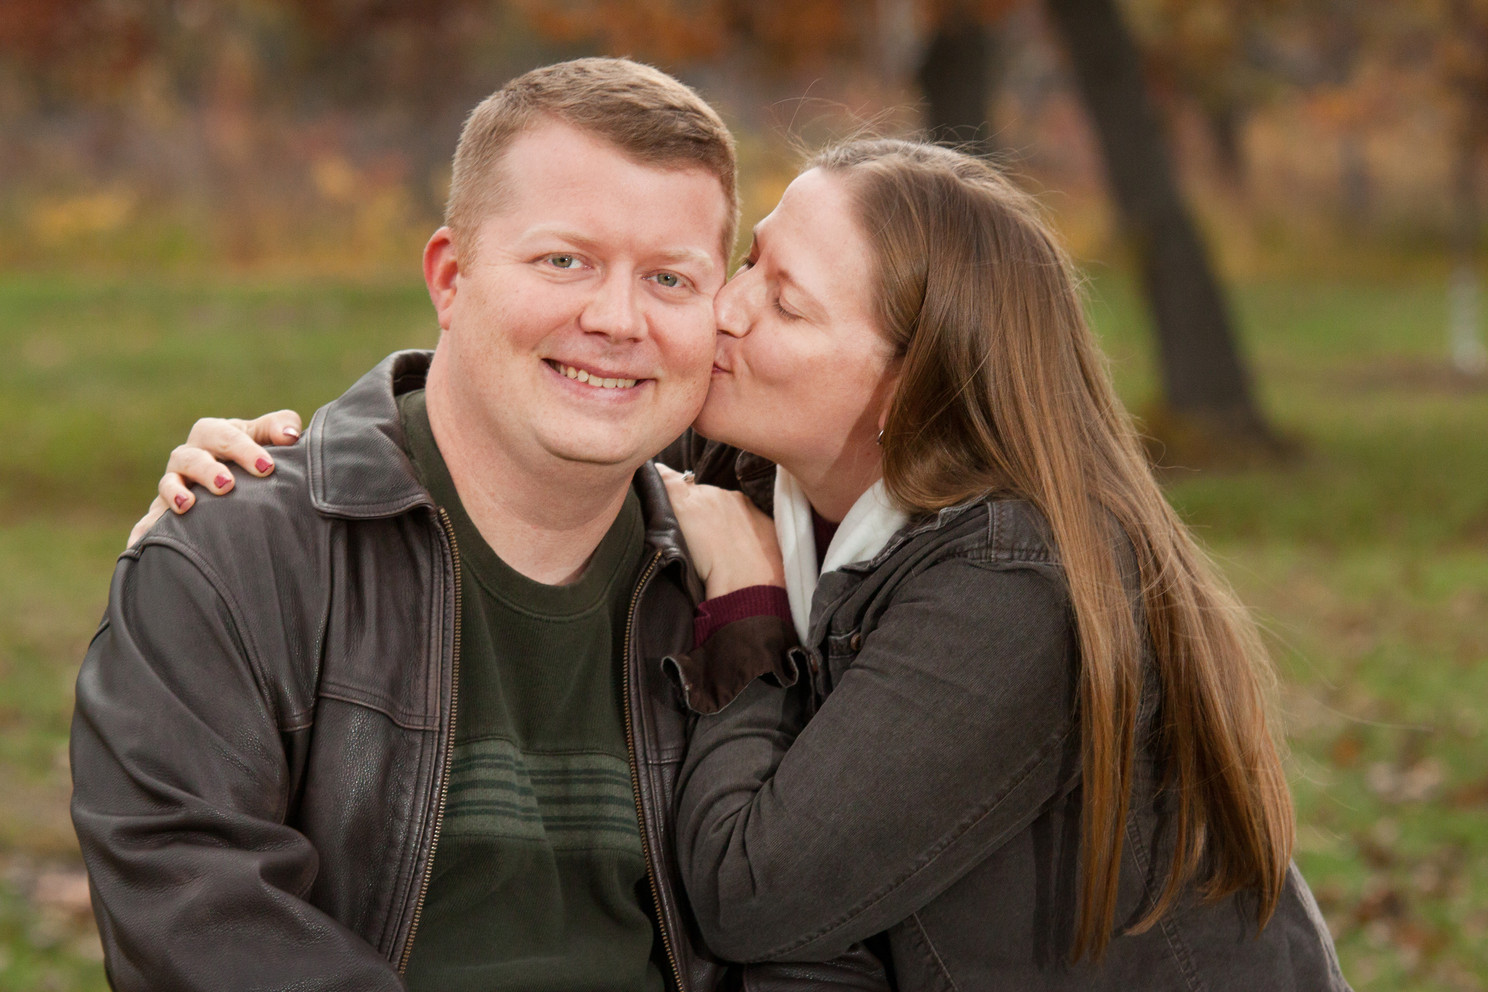 Engagement Portraits - By Becky Lynn Photography